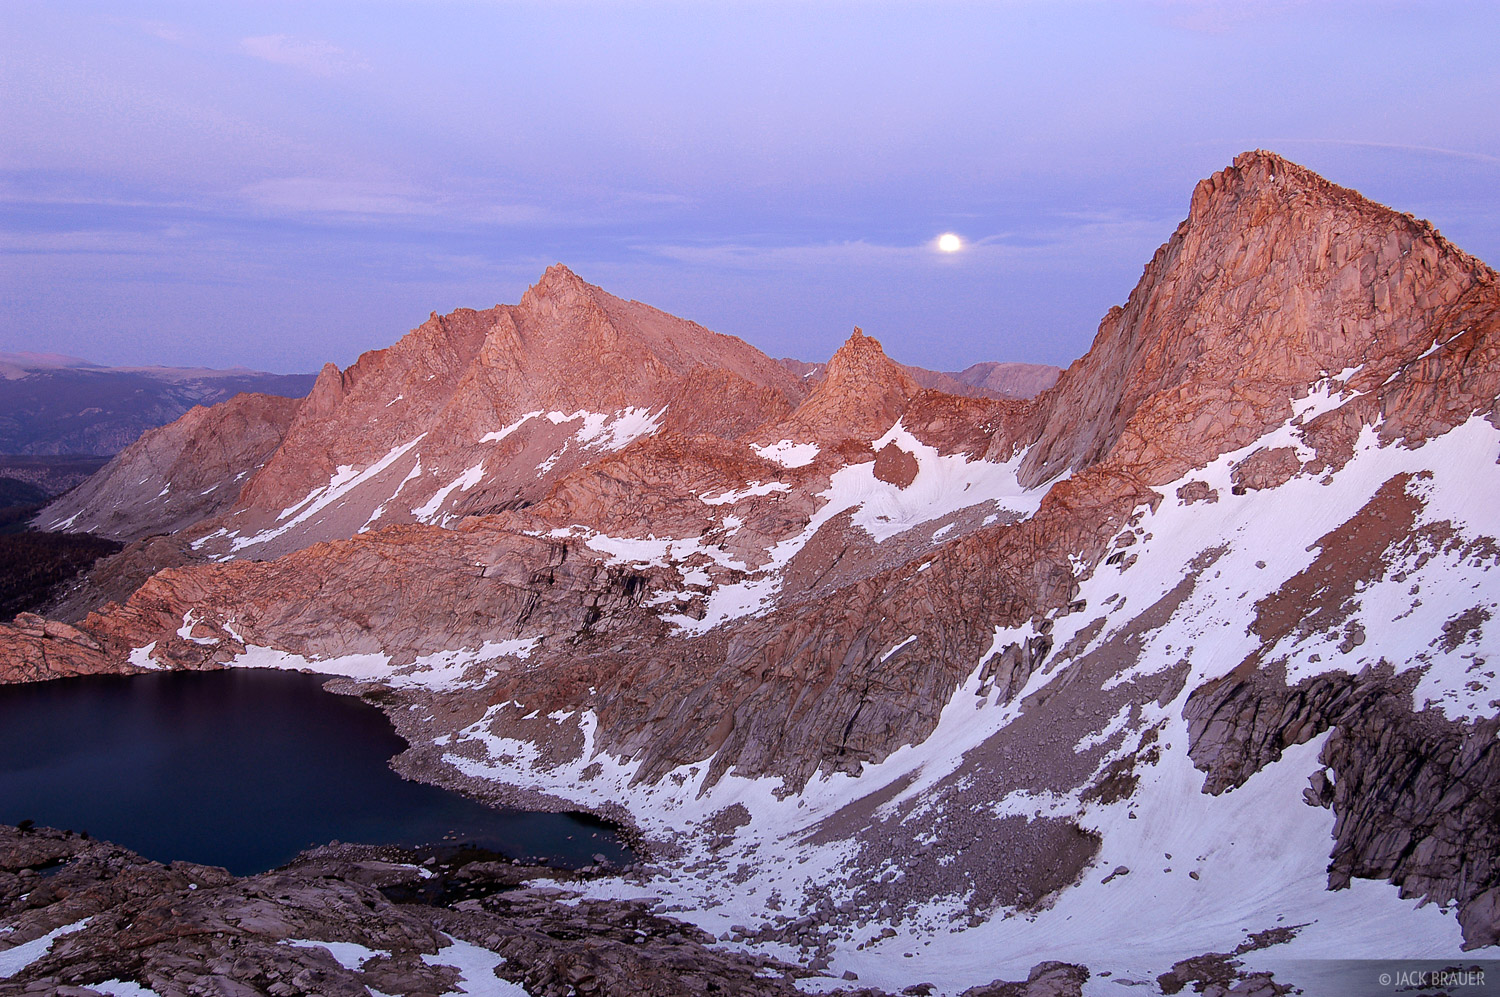 Sawtooth Peak, twilight, Sierra Nevada, California, Sequoia National Park, photo